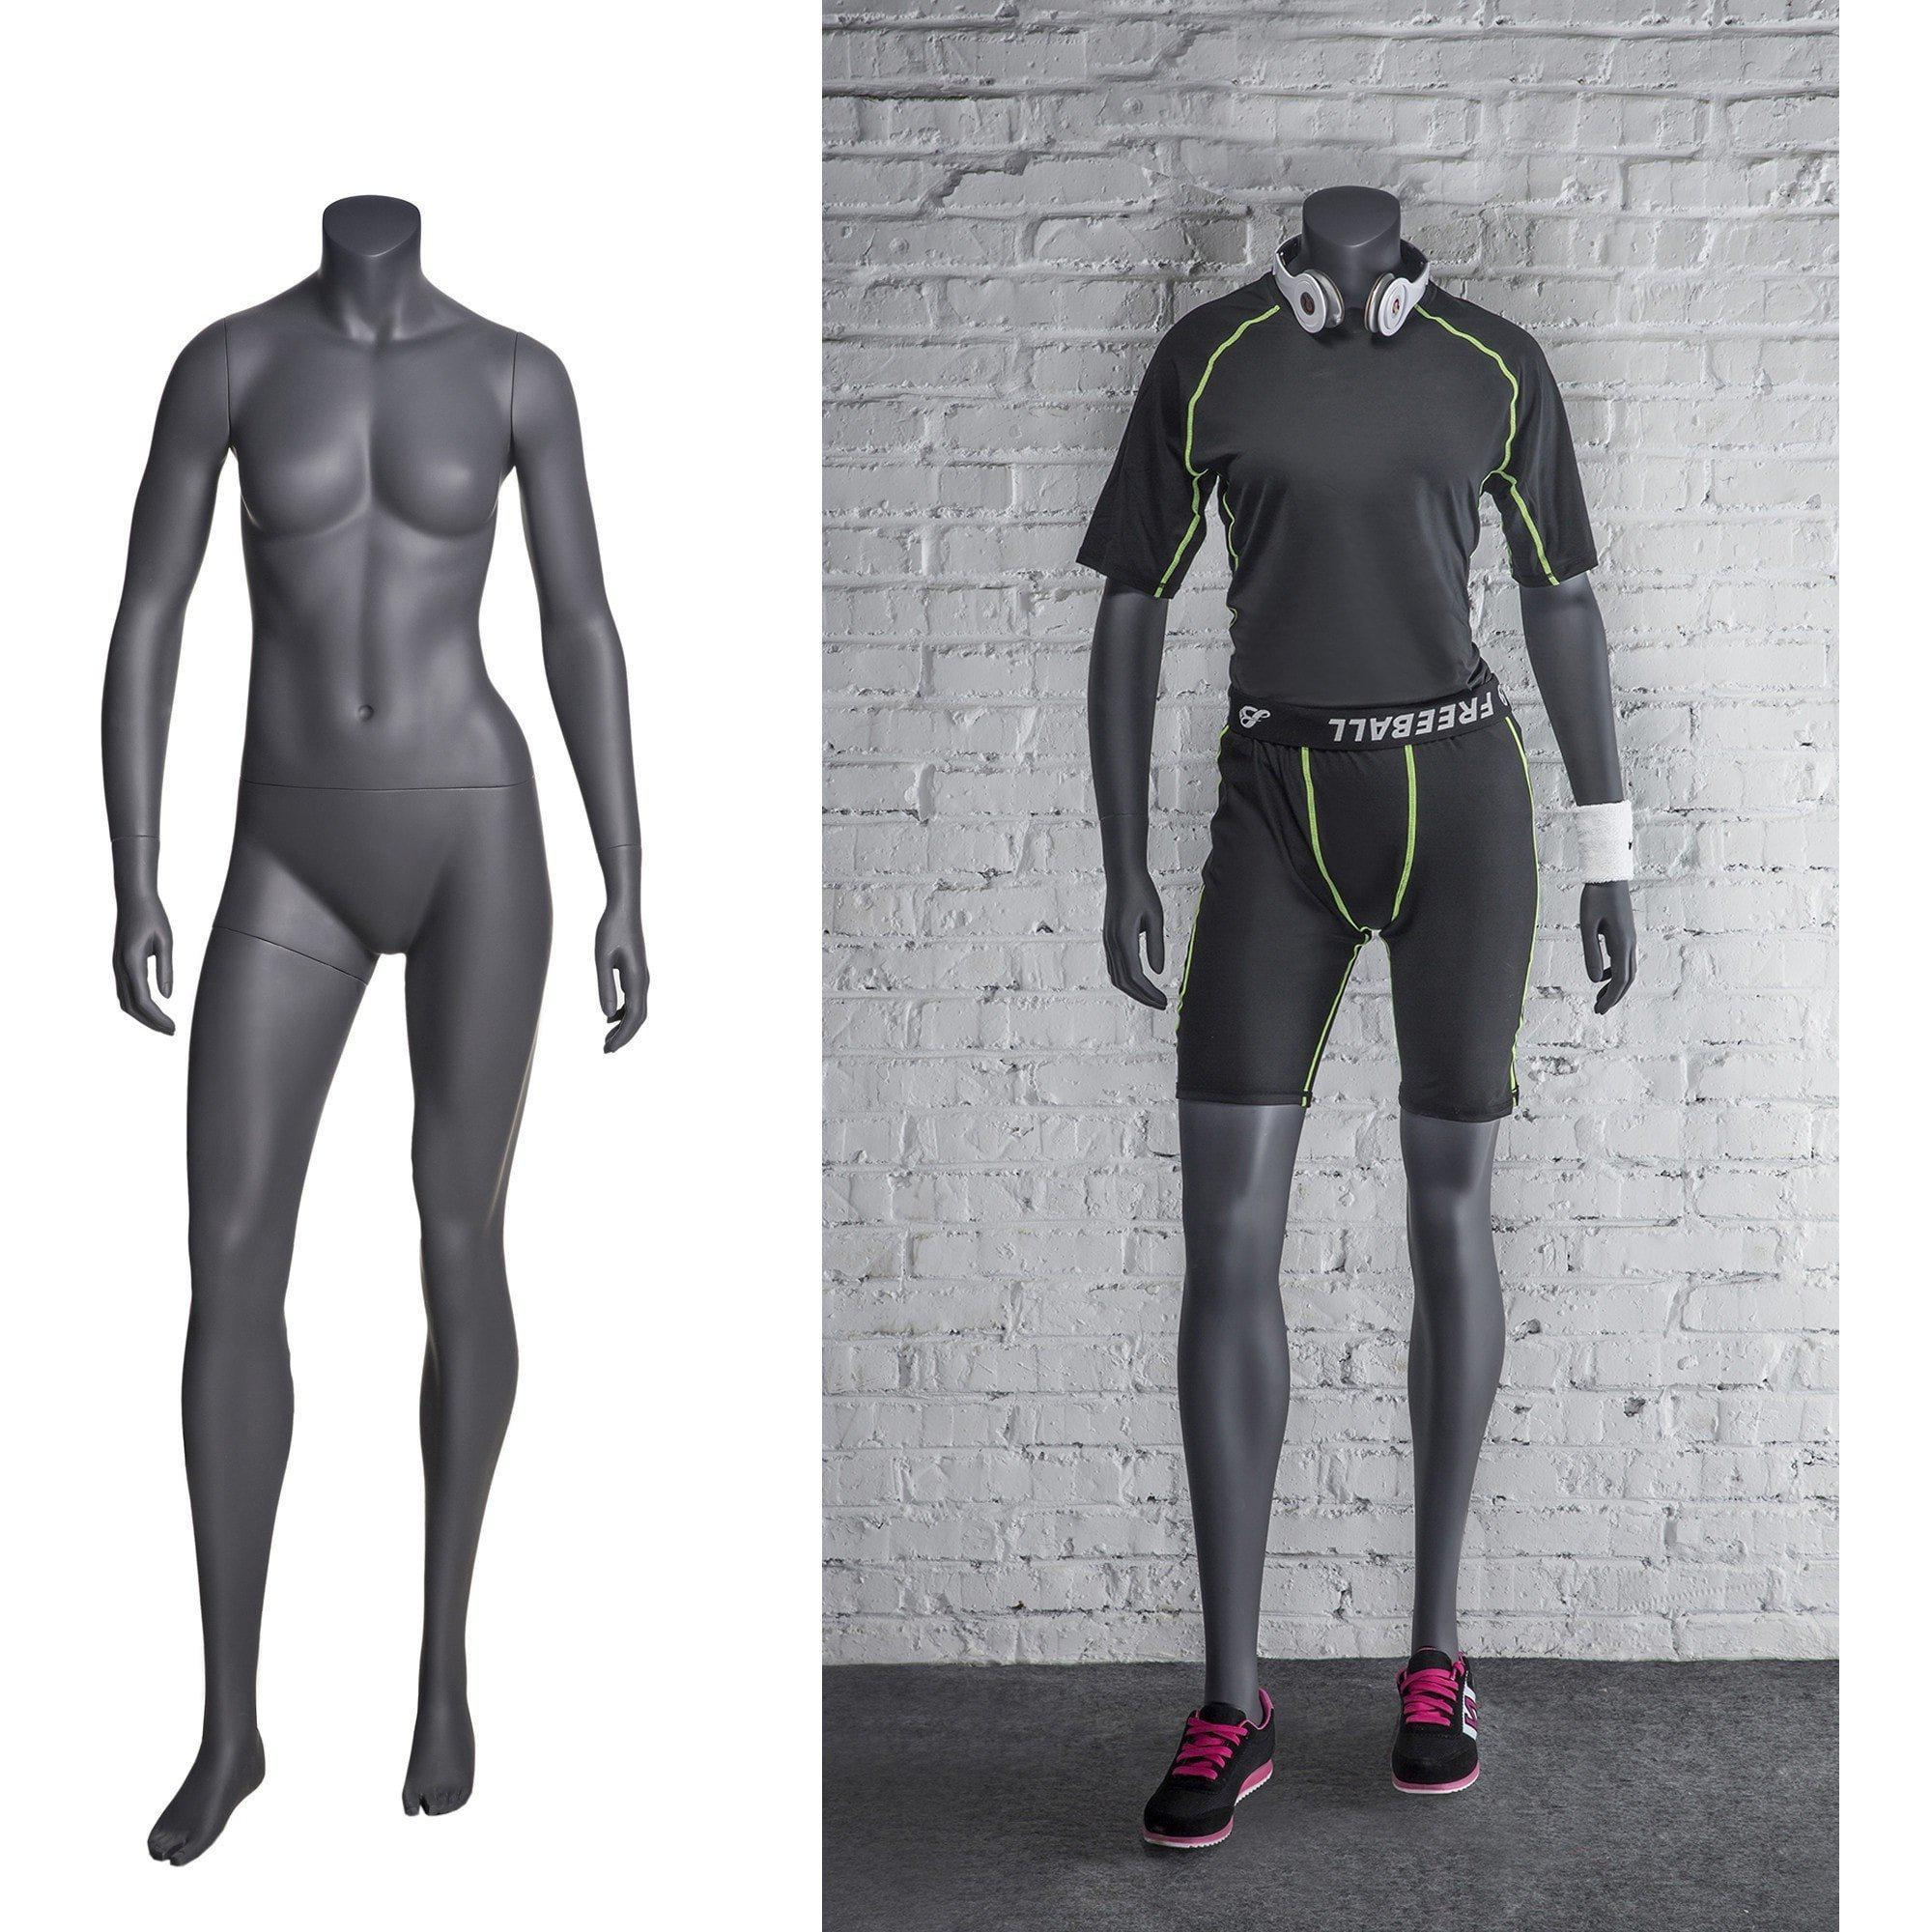 Athletic Sports Headless Female Mannequin MM-NI10